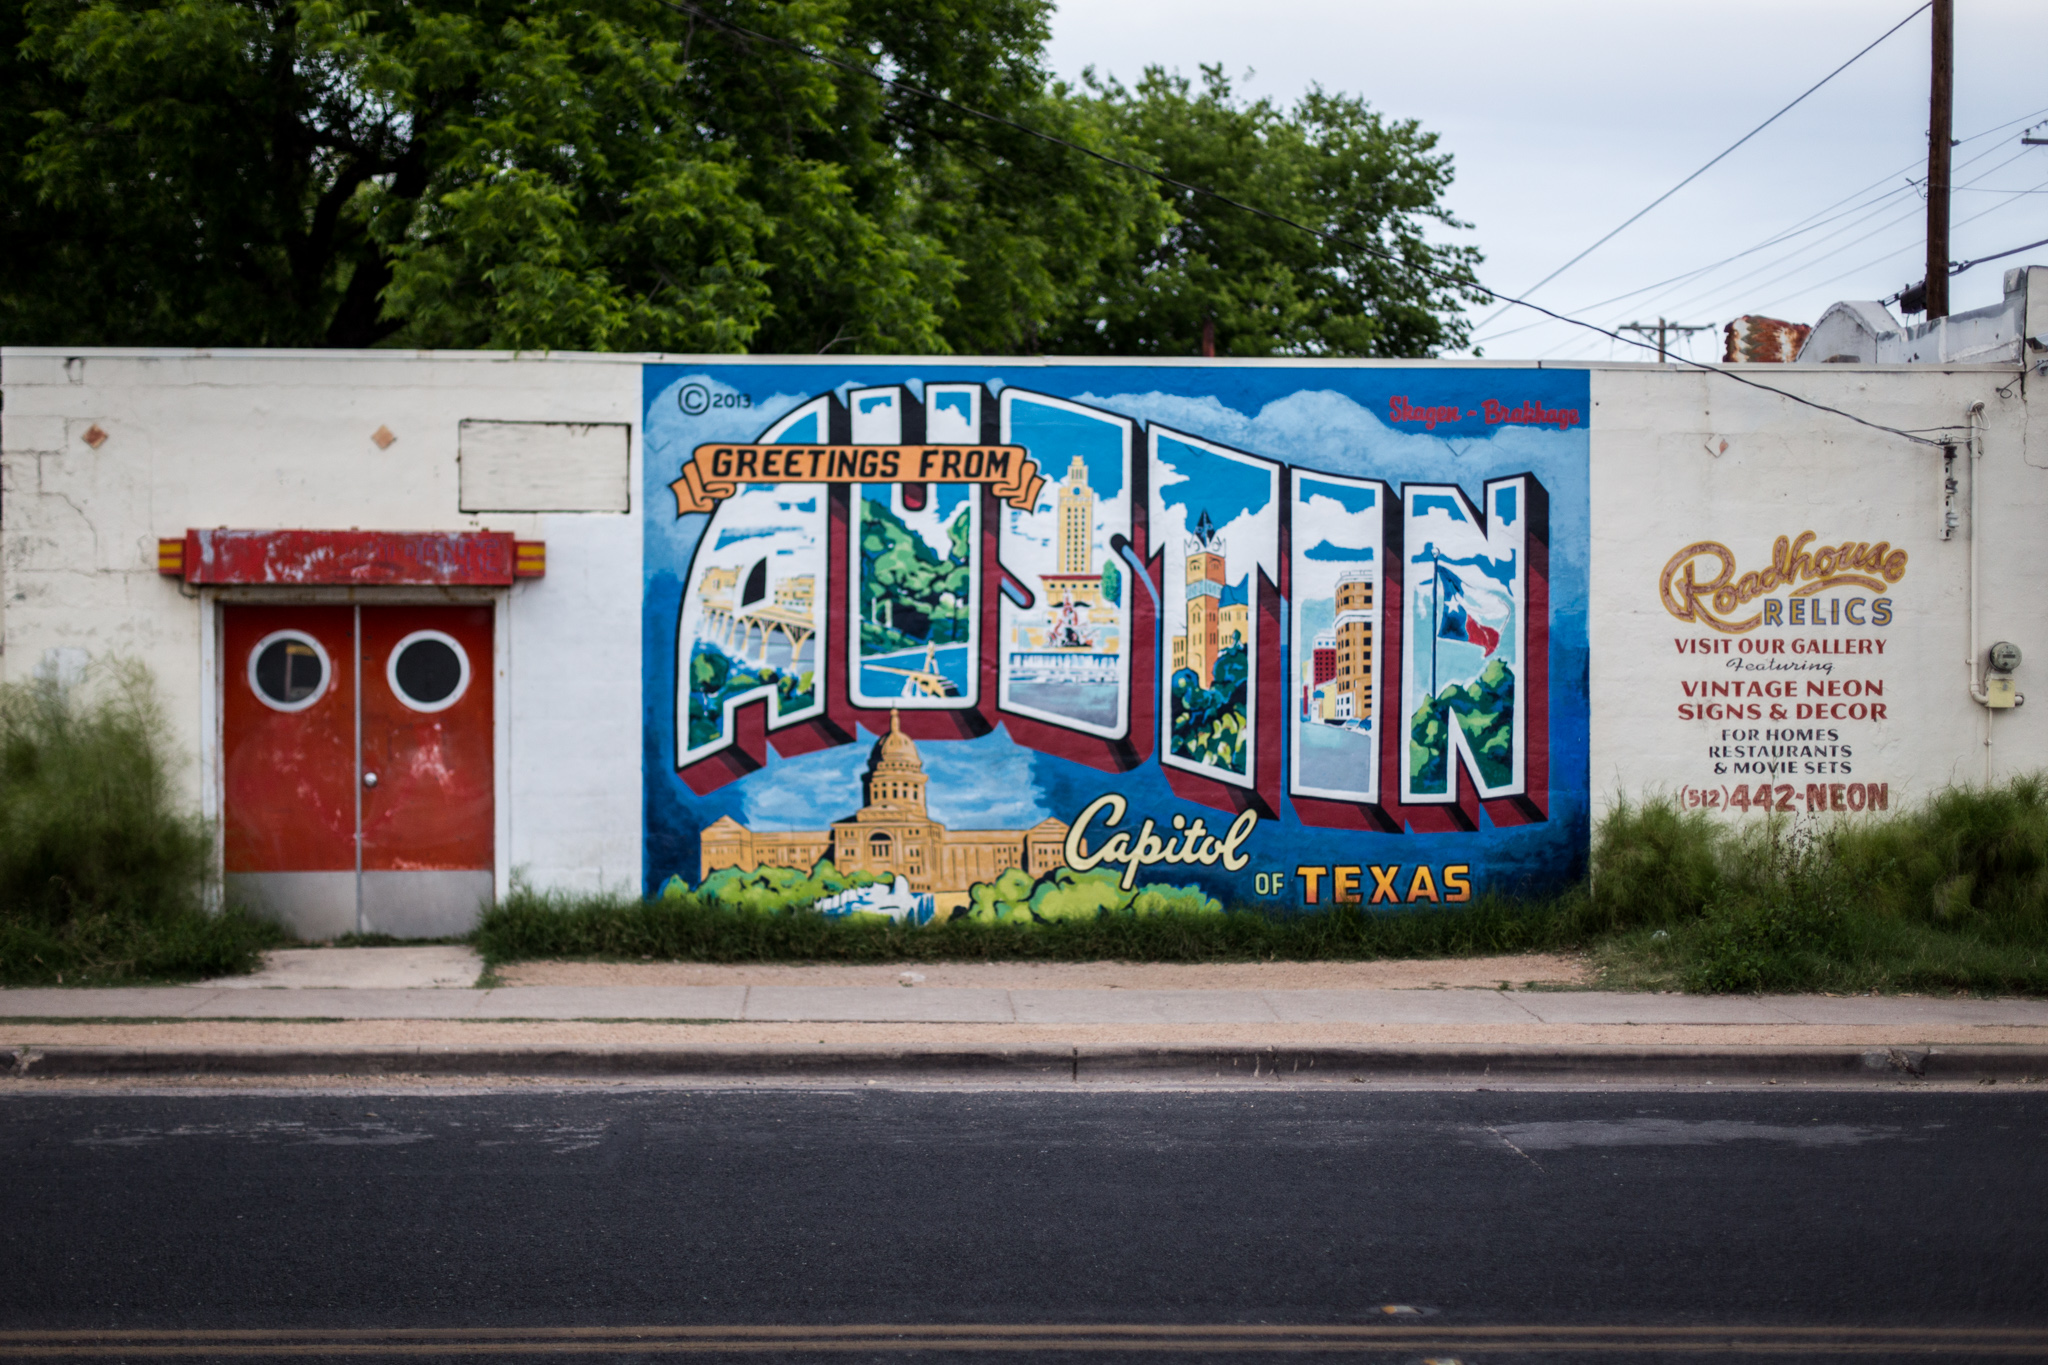 Roadhouse Relics - Greetings From Austin mural. This little icon is about 2 houses down from us. How cool is that?